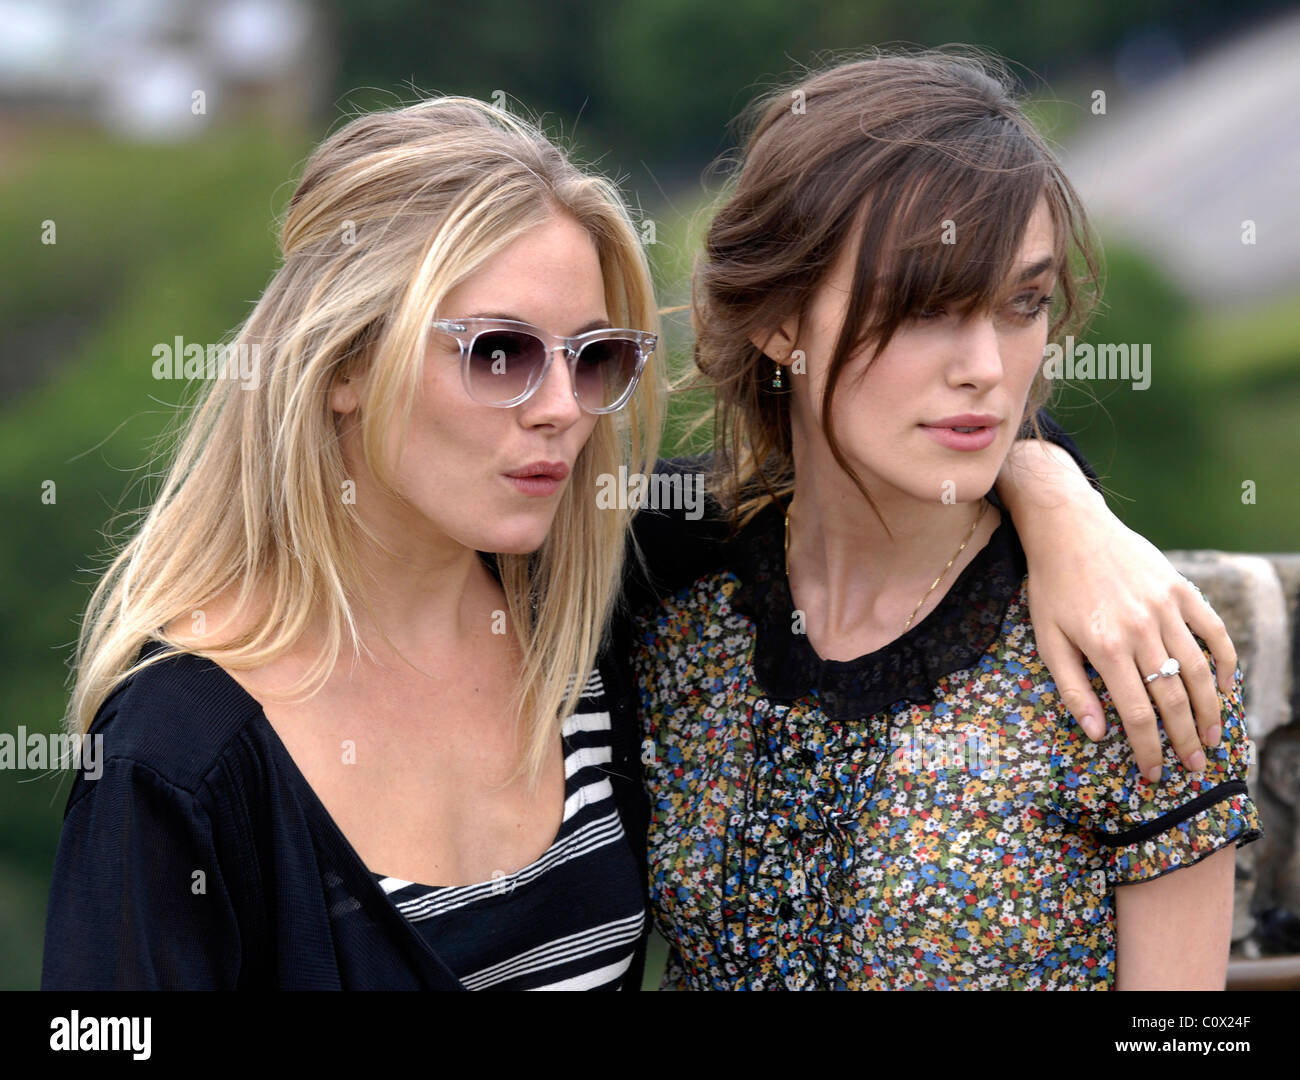 SIENNA MILLER and KEIRA KNIGHTLEY - Stock Image